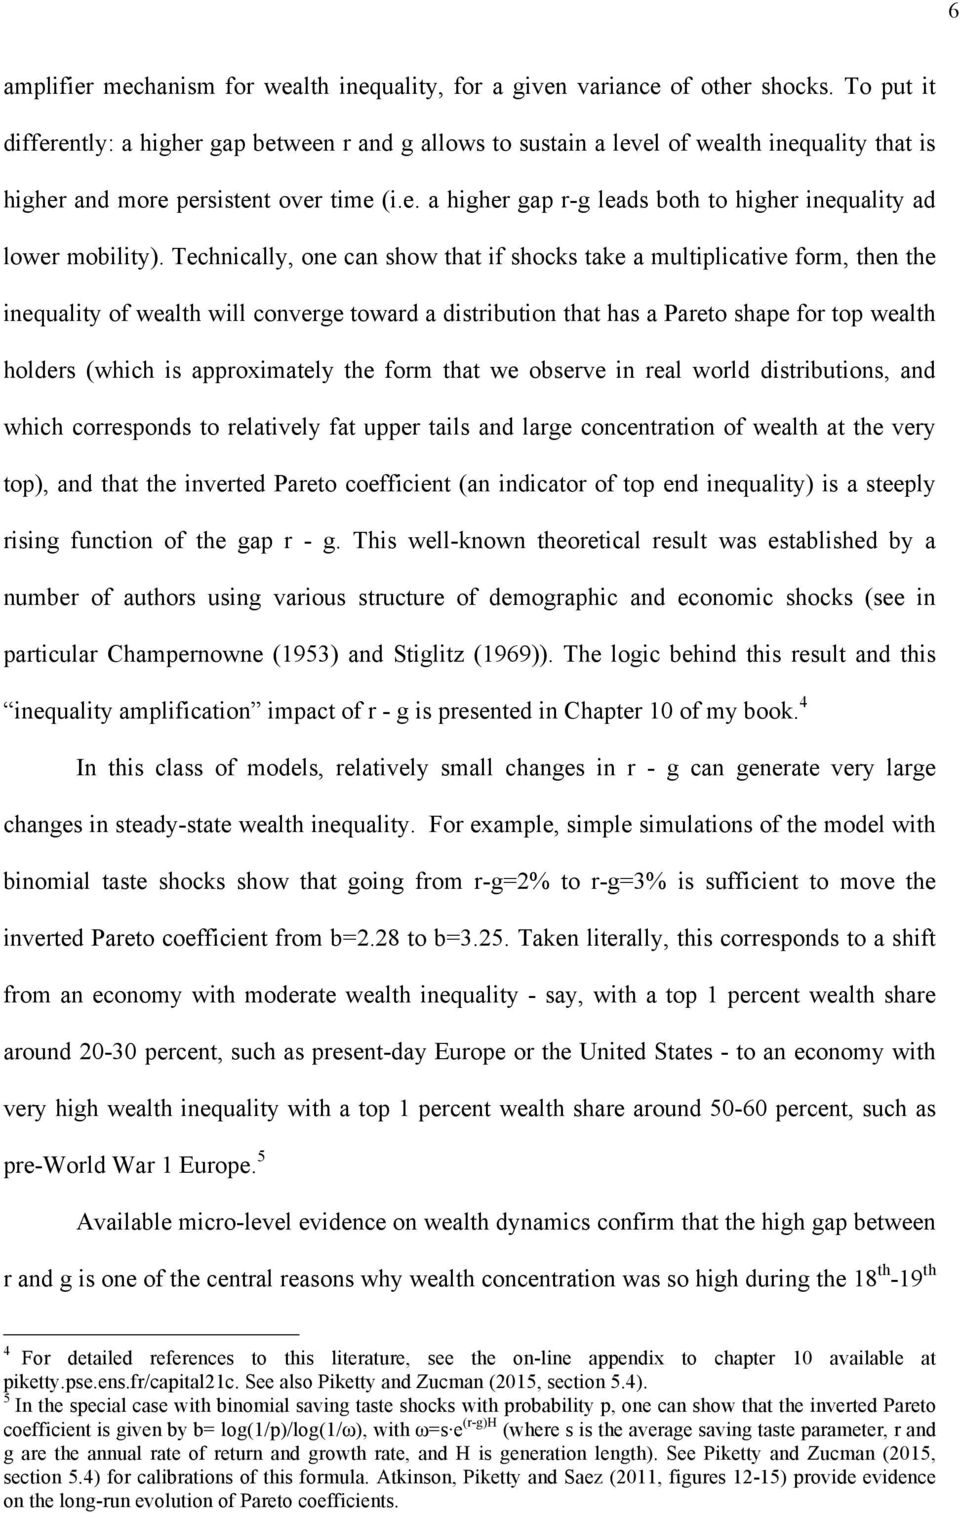 Technically, one can show that if shocks take a multiplicative form, then the inequality of wealth will converge toward a distribution that has a Pareto shape for top wealth holders (which is